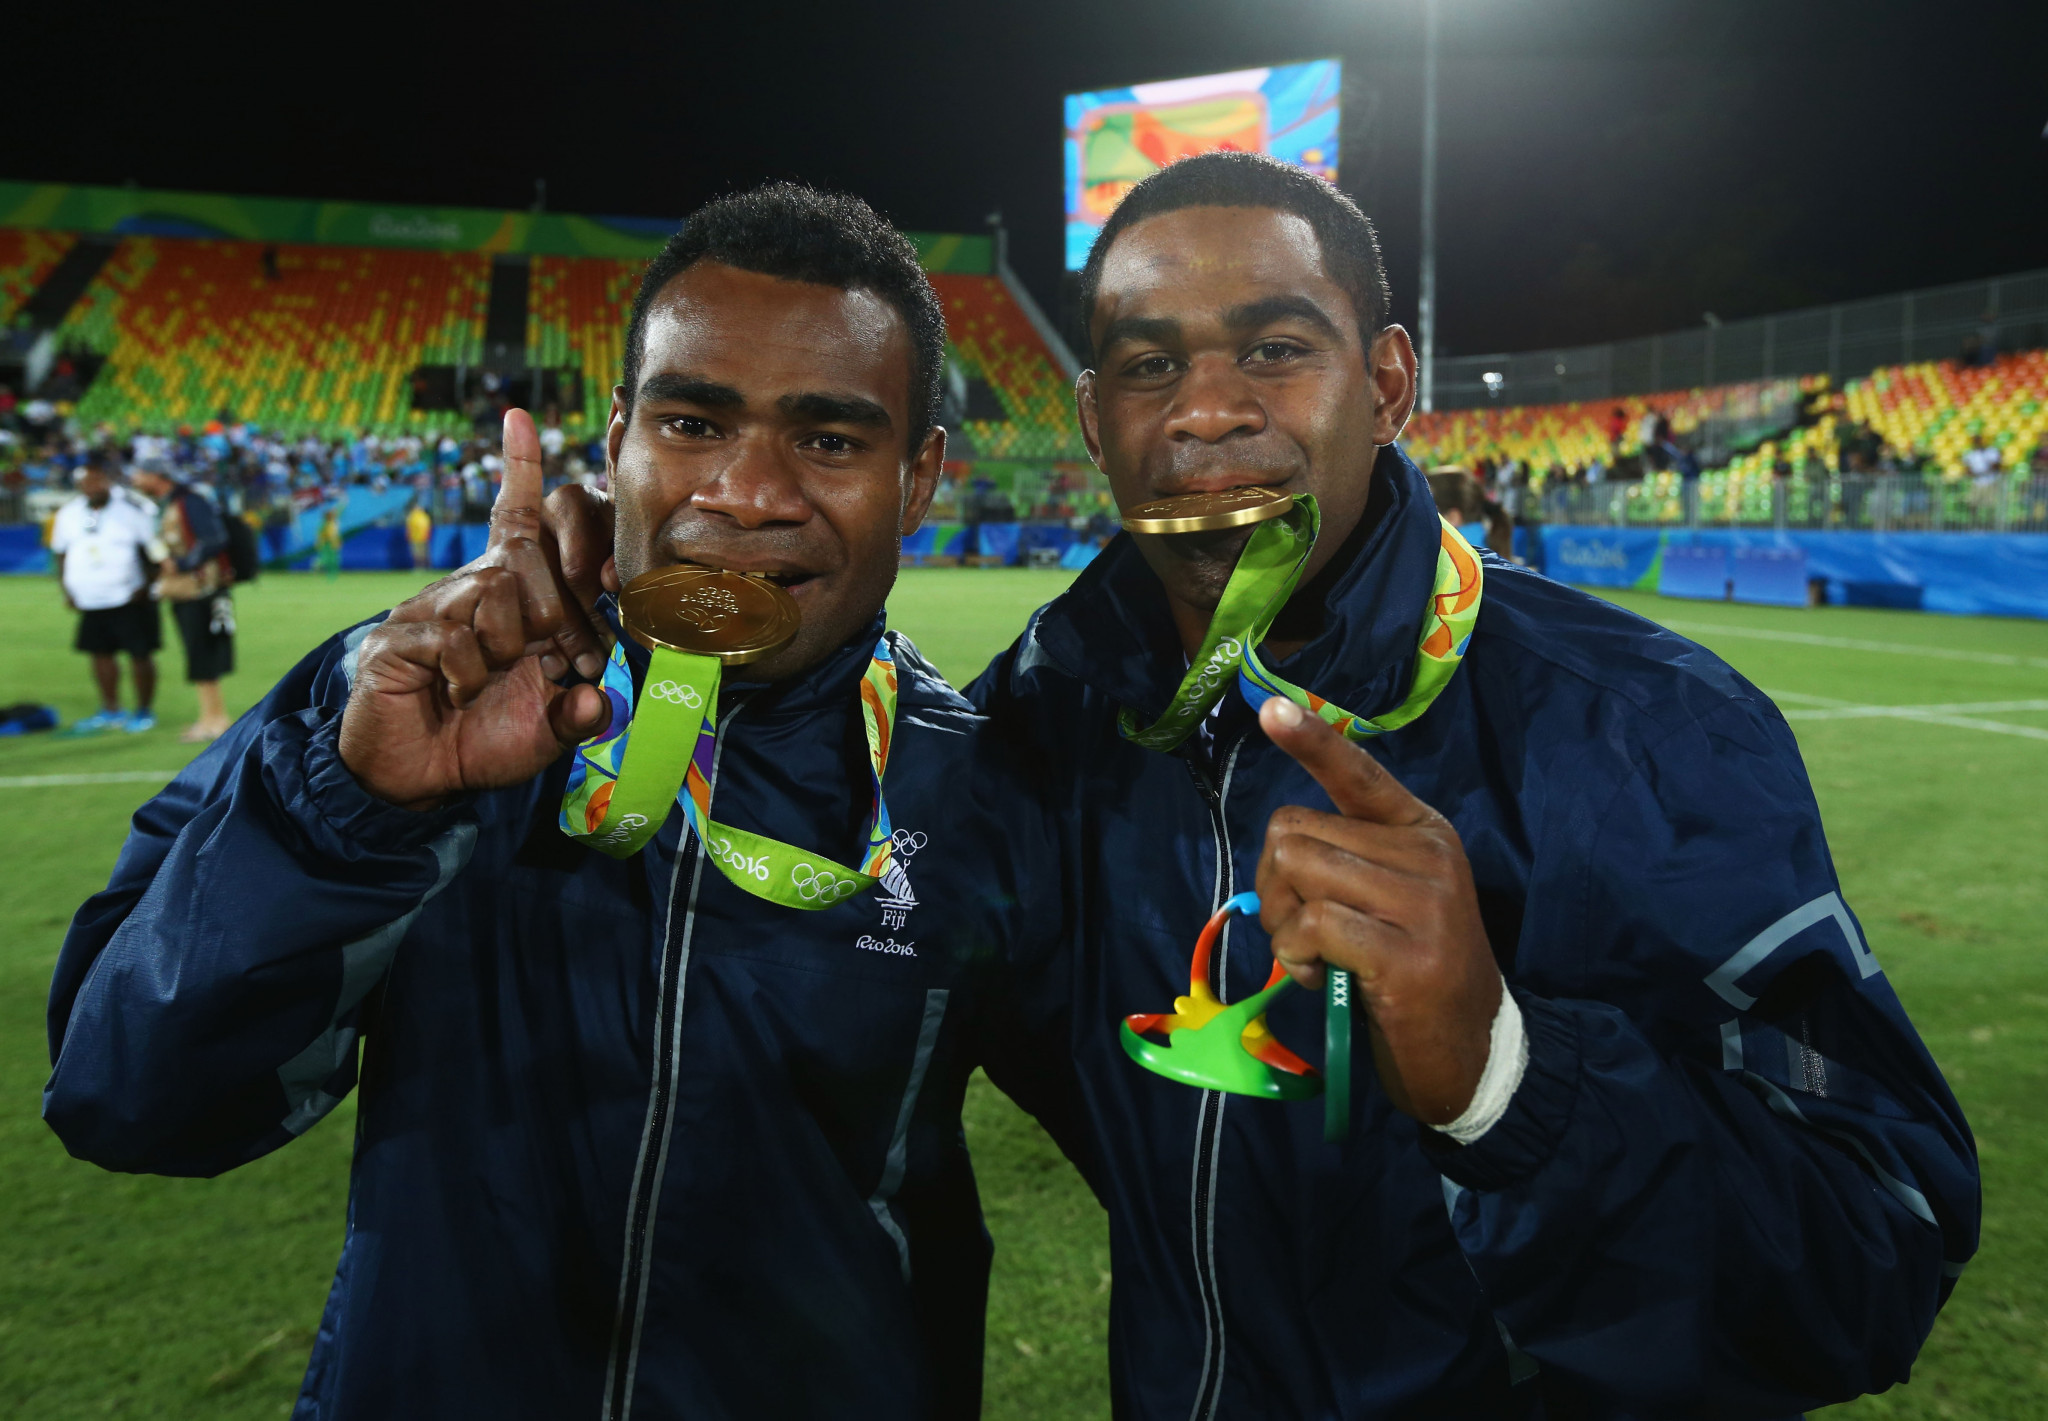 Fiji were the inaugural Olympic sevens champions at Rio 2016 ©Getty Images